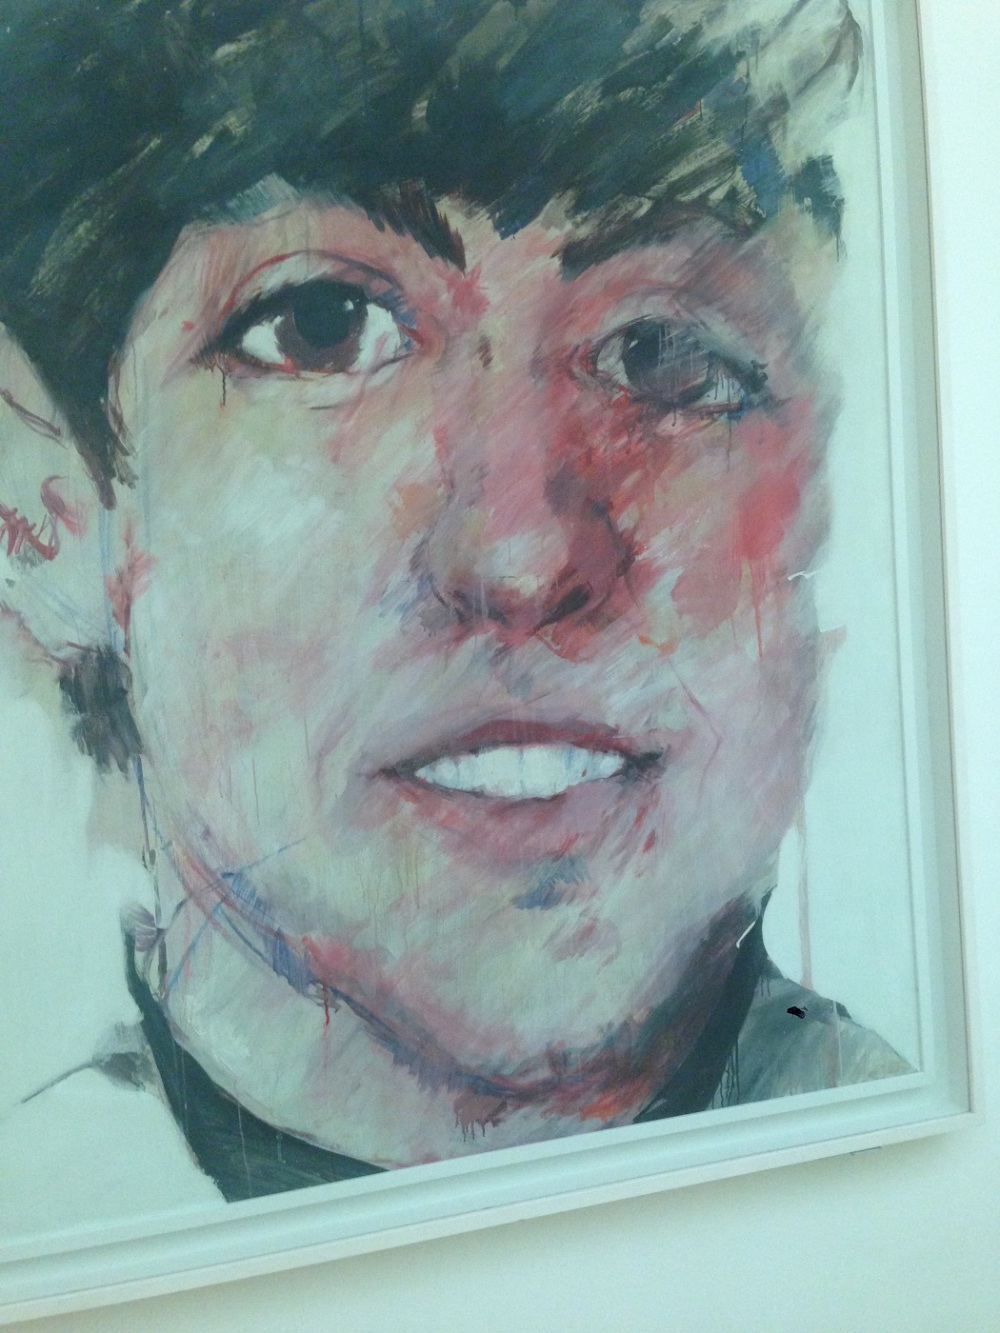 Paul McCartney Painting at the National Portrait Gallery in London